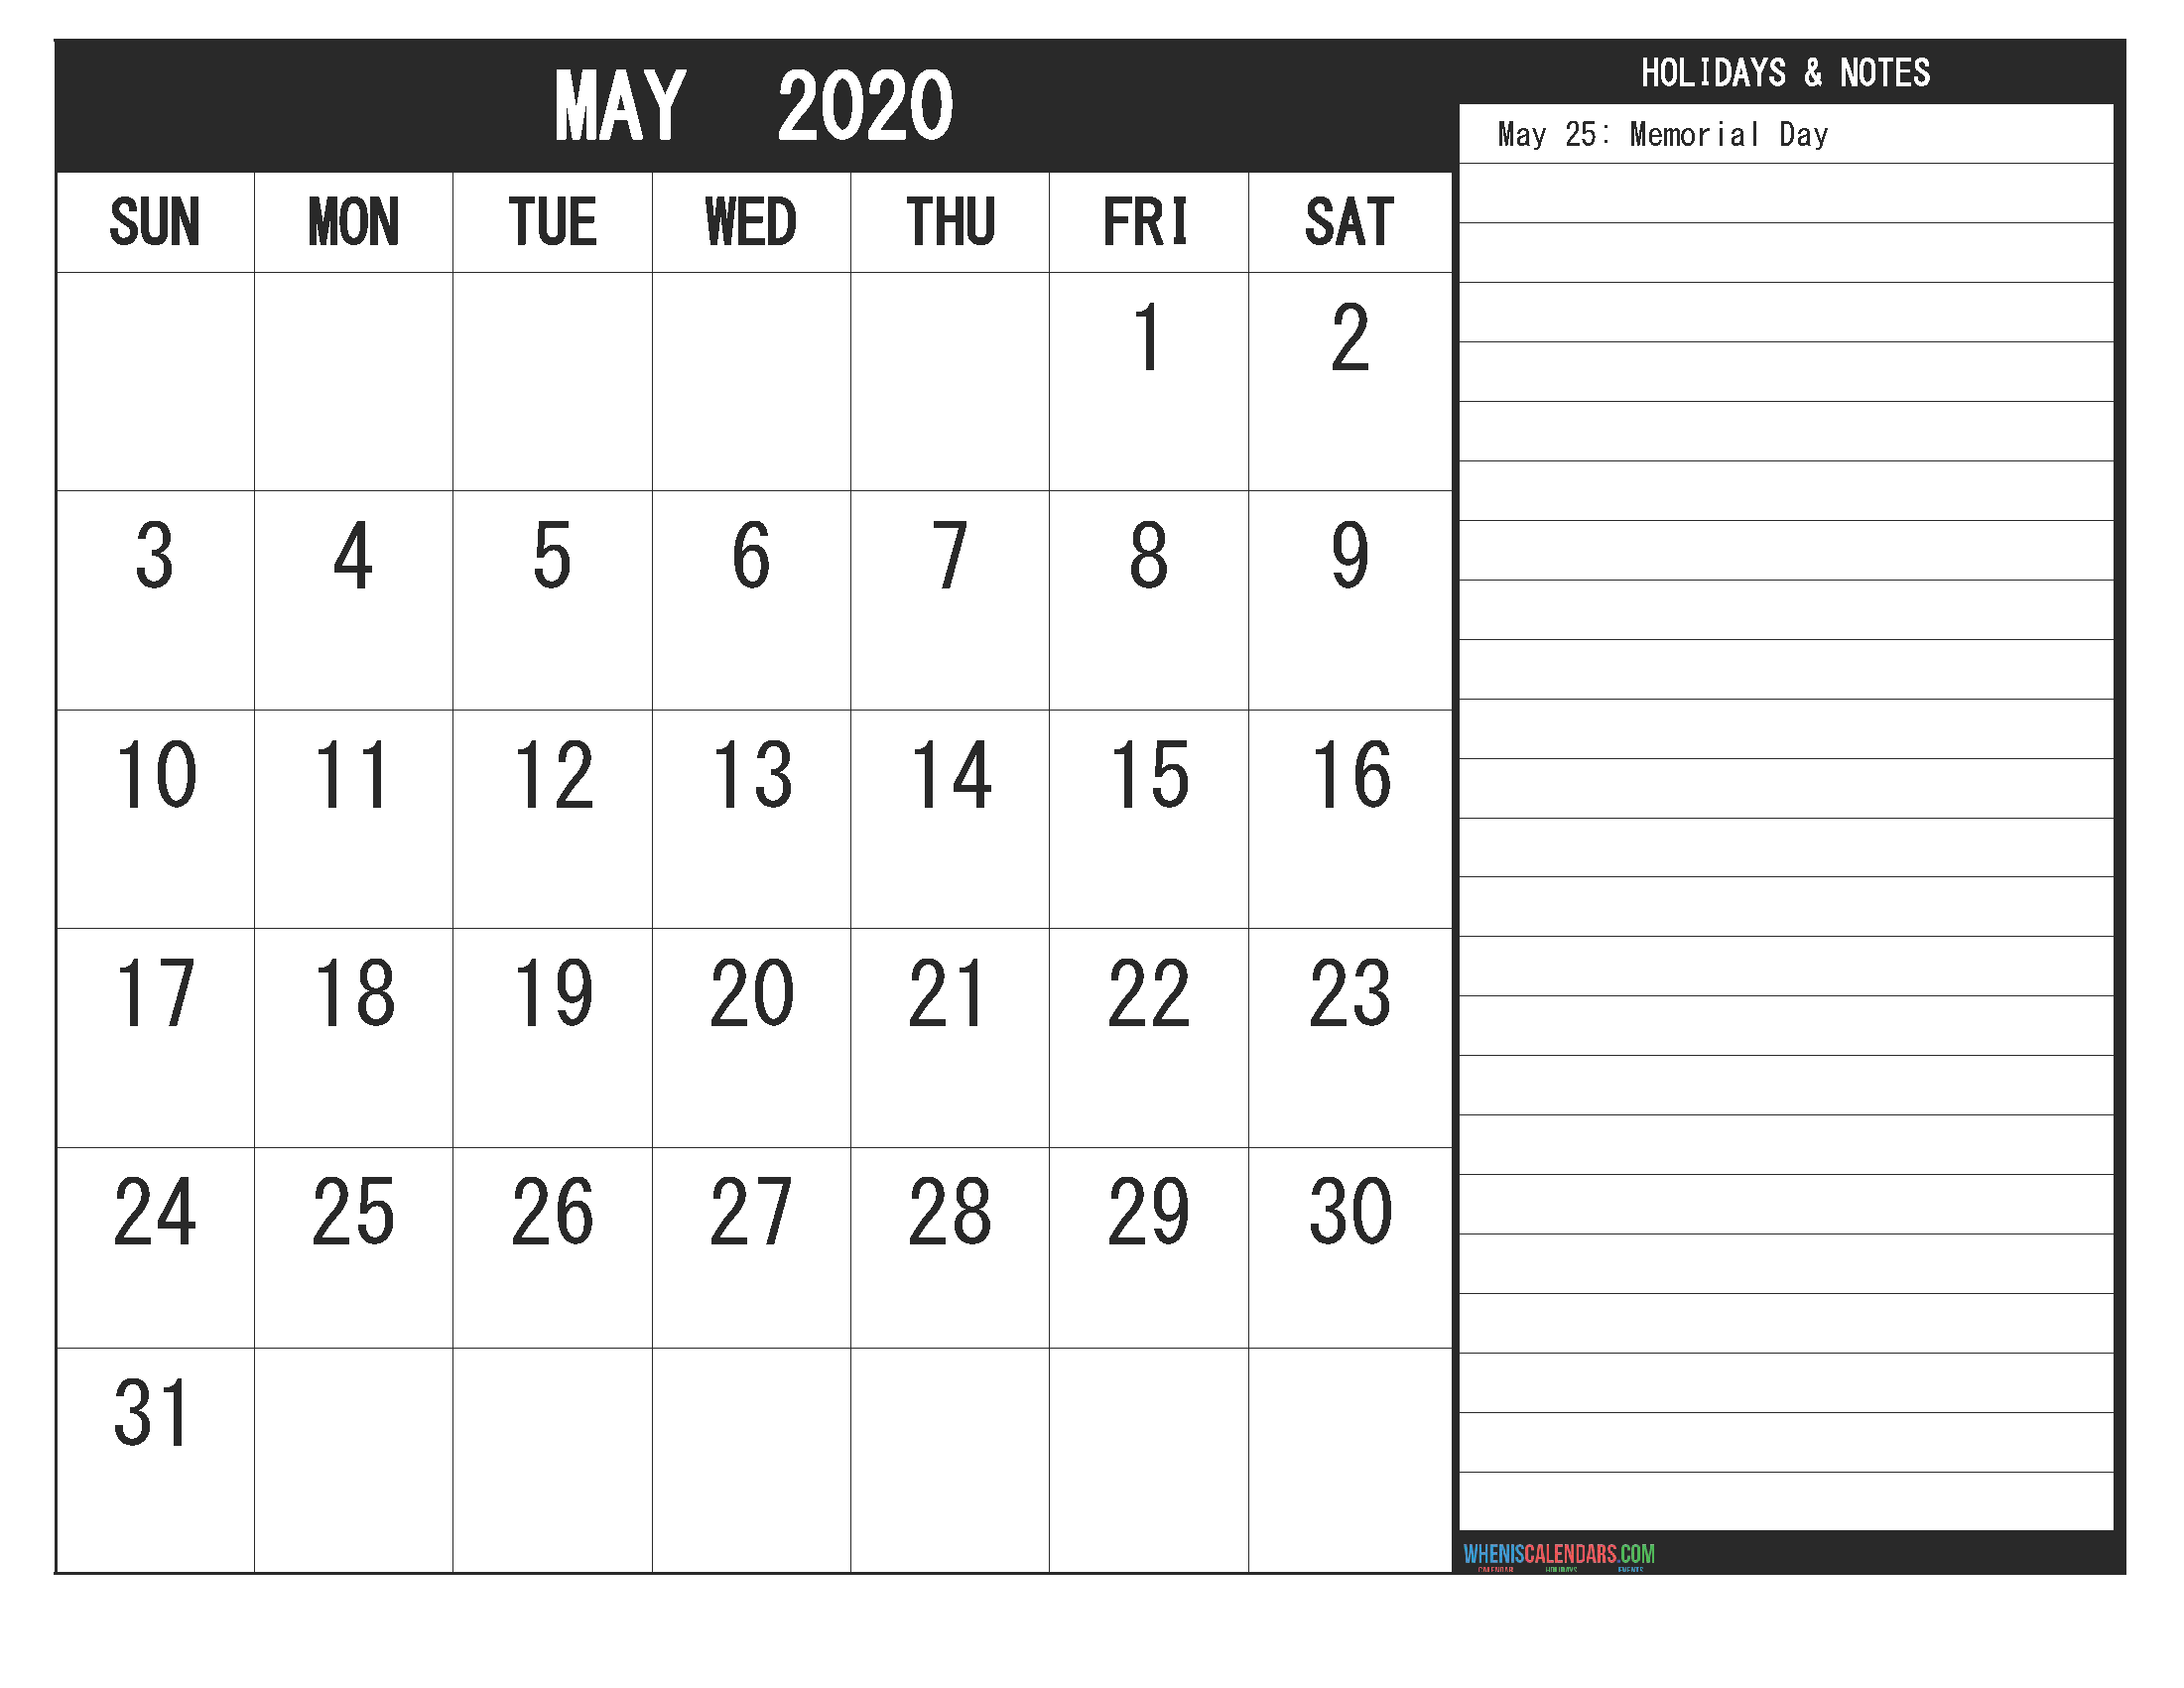 Free Printable Monthly Calendar 2020 May with Holidays